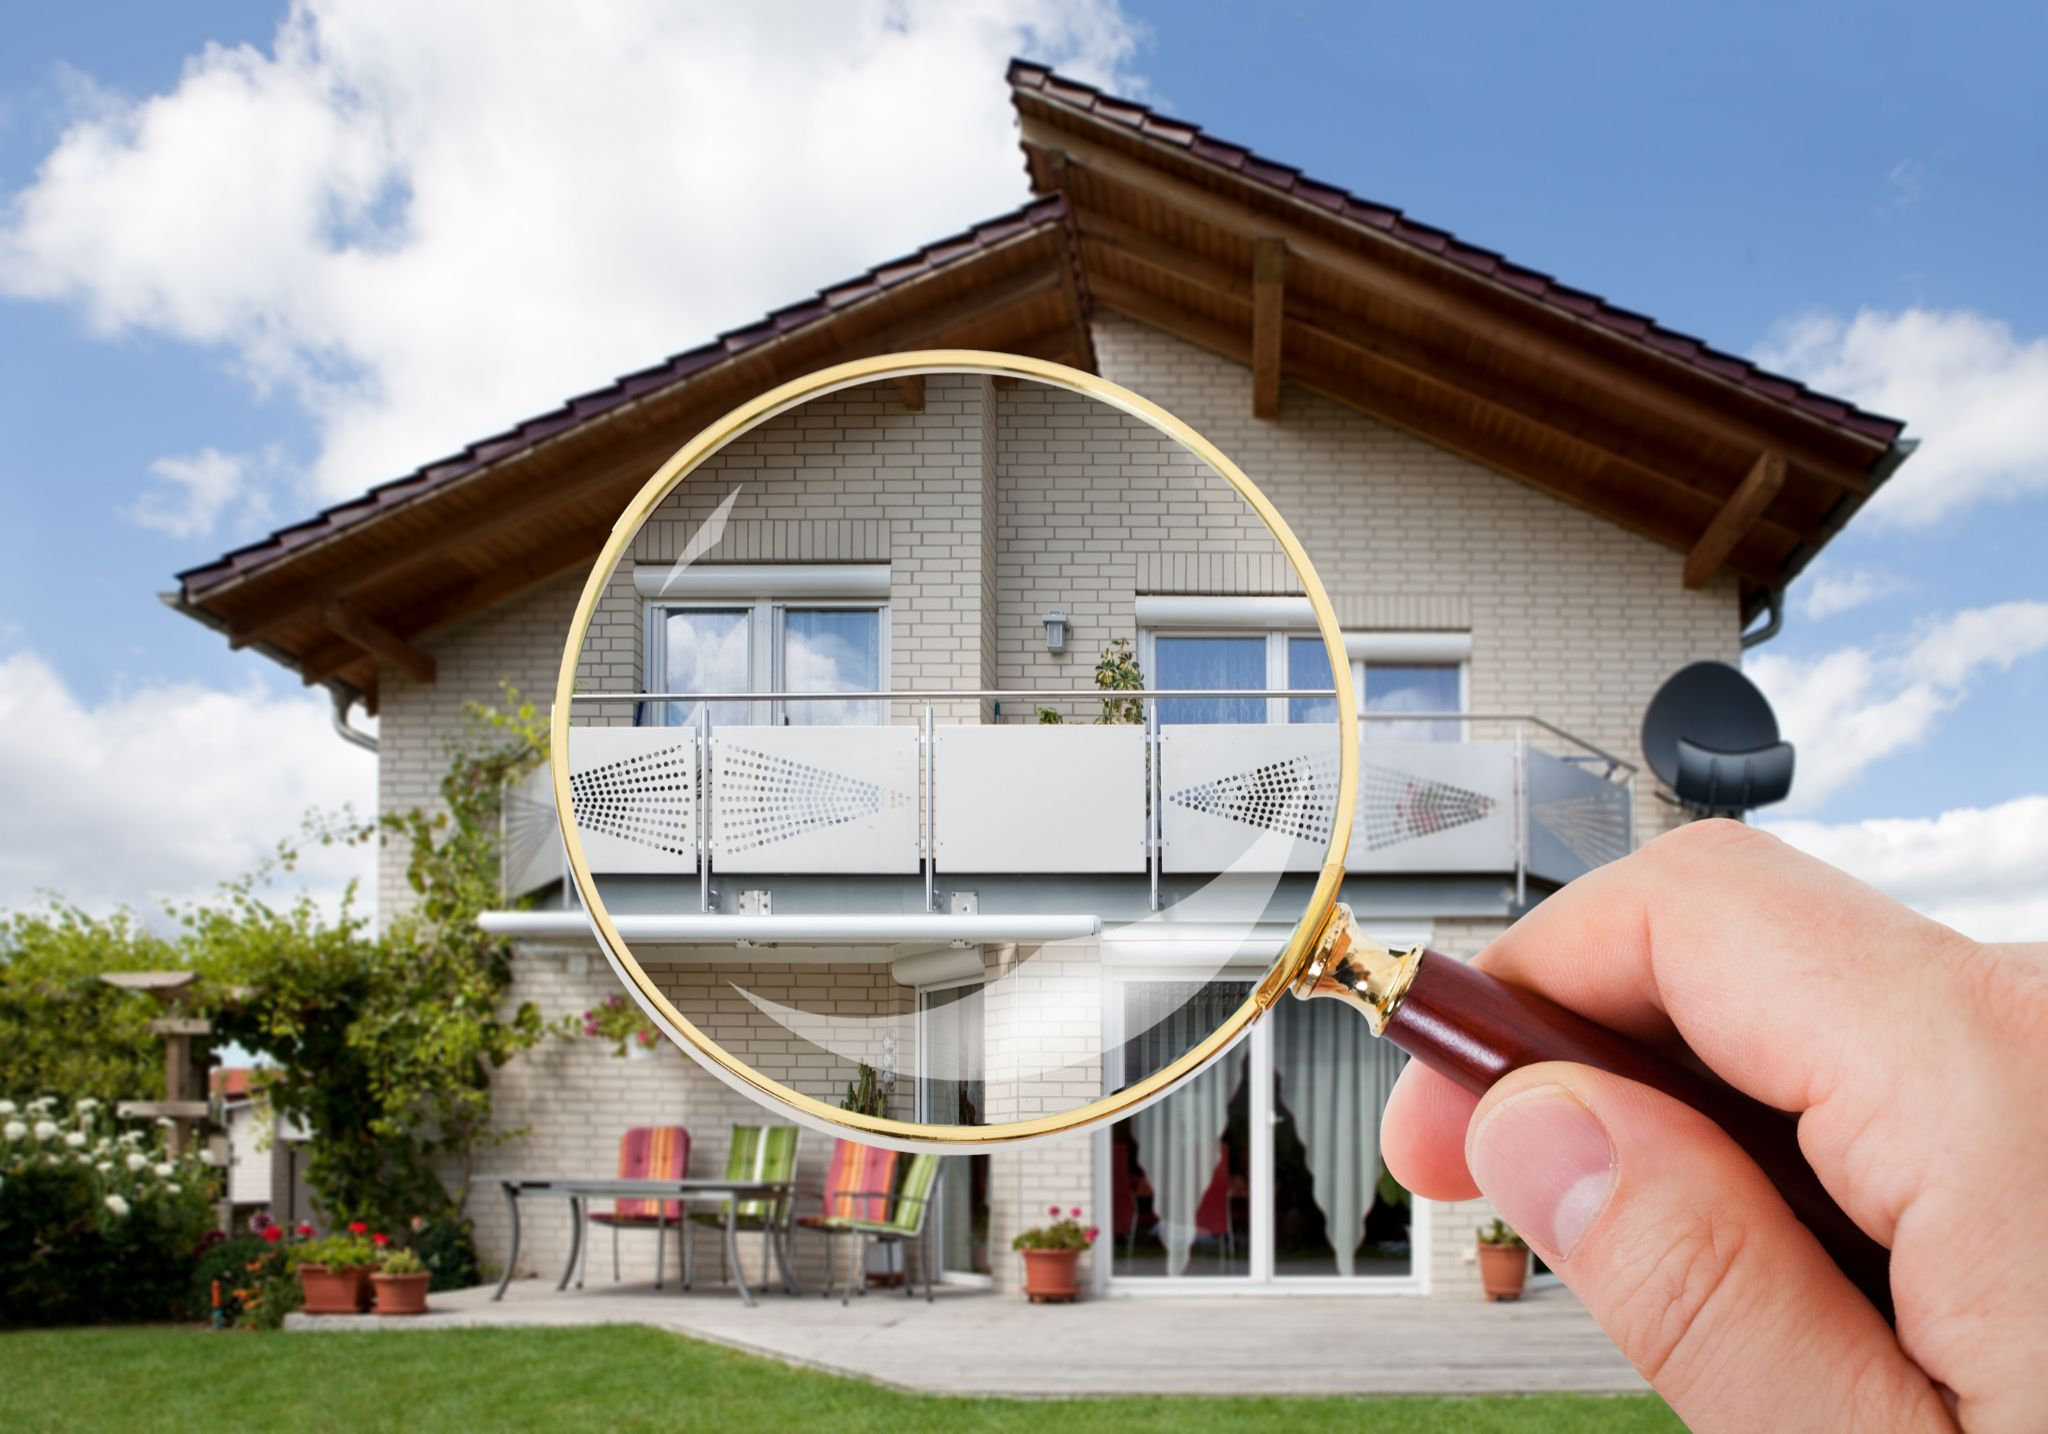 Magnifying glass inspecting a home.